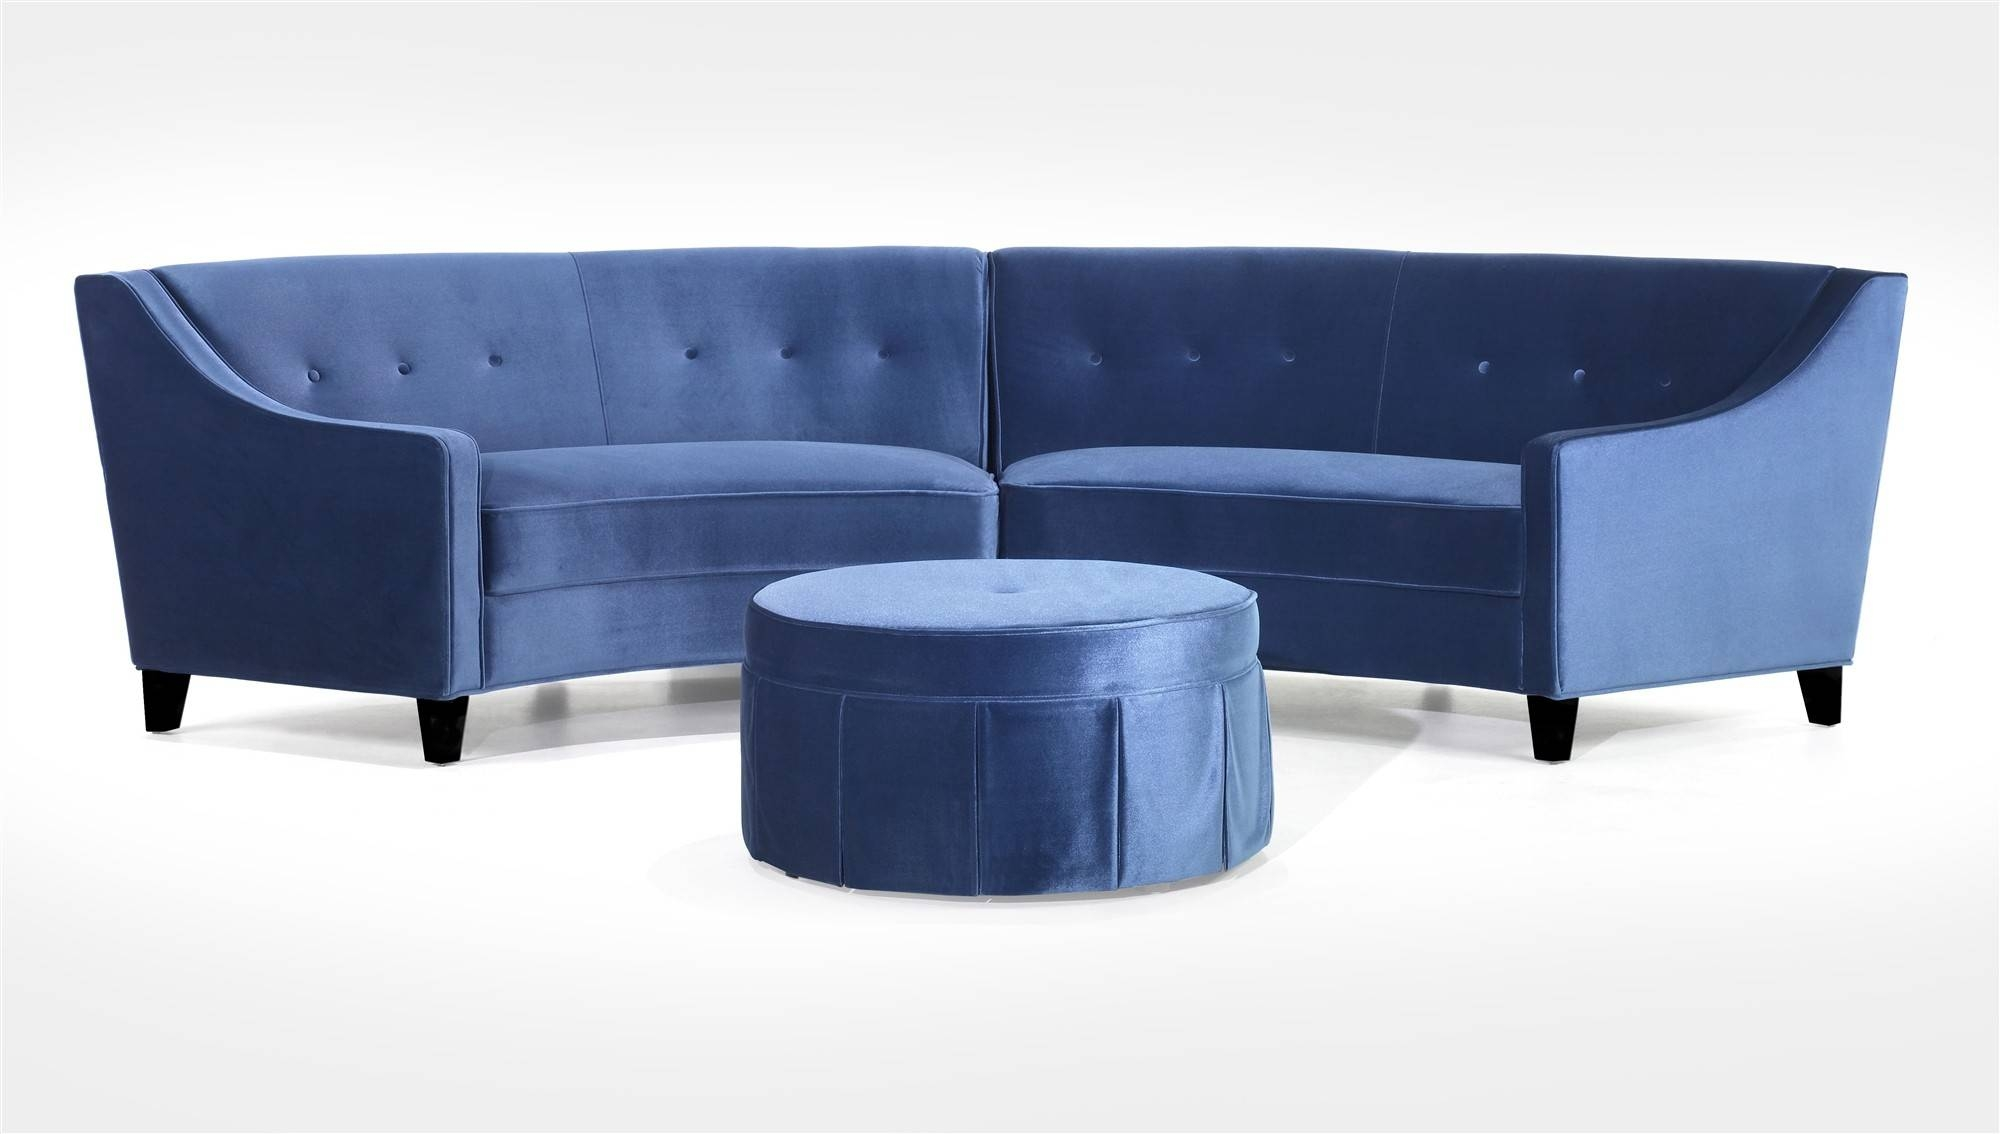 Furniture: Upholstered Fabric Curved Sectional Sofa For Living with regard to Circular Sofa Chairs (Image 10 of 30)